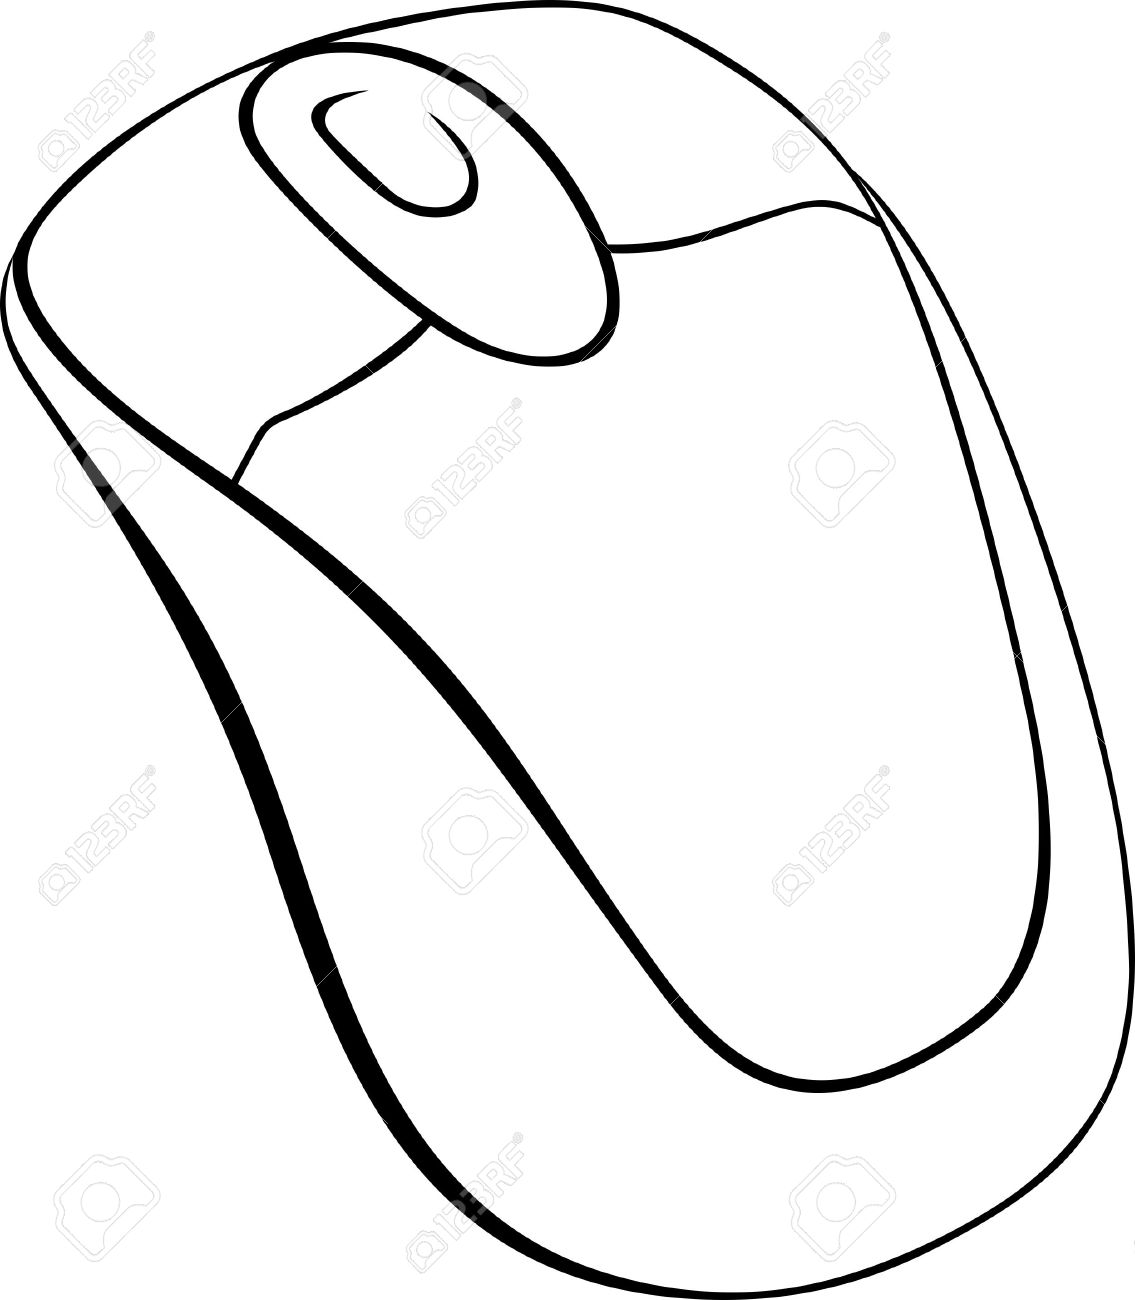 hight resolution of computer mouse on white background royalty free cliparts vectors computer mouse diagram